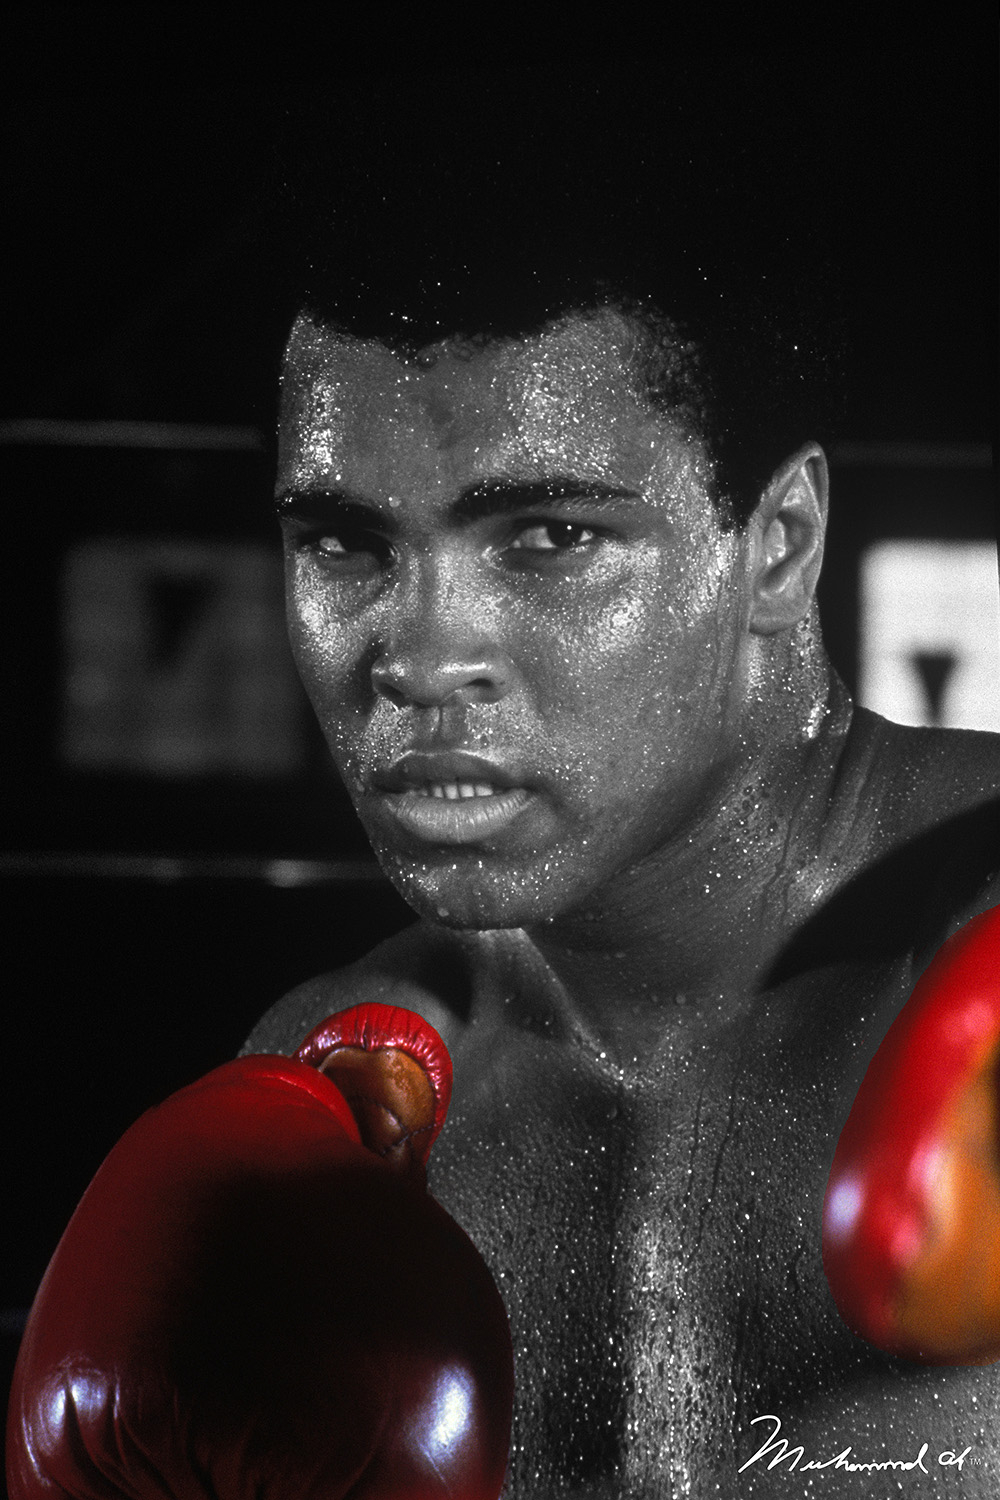 Black and white photo of Muhammad Ali with red boxing gloves in a boxing stance